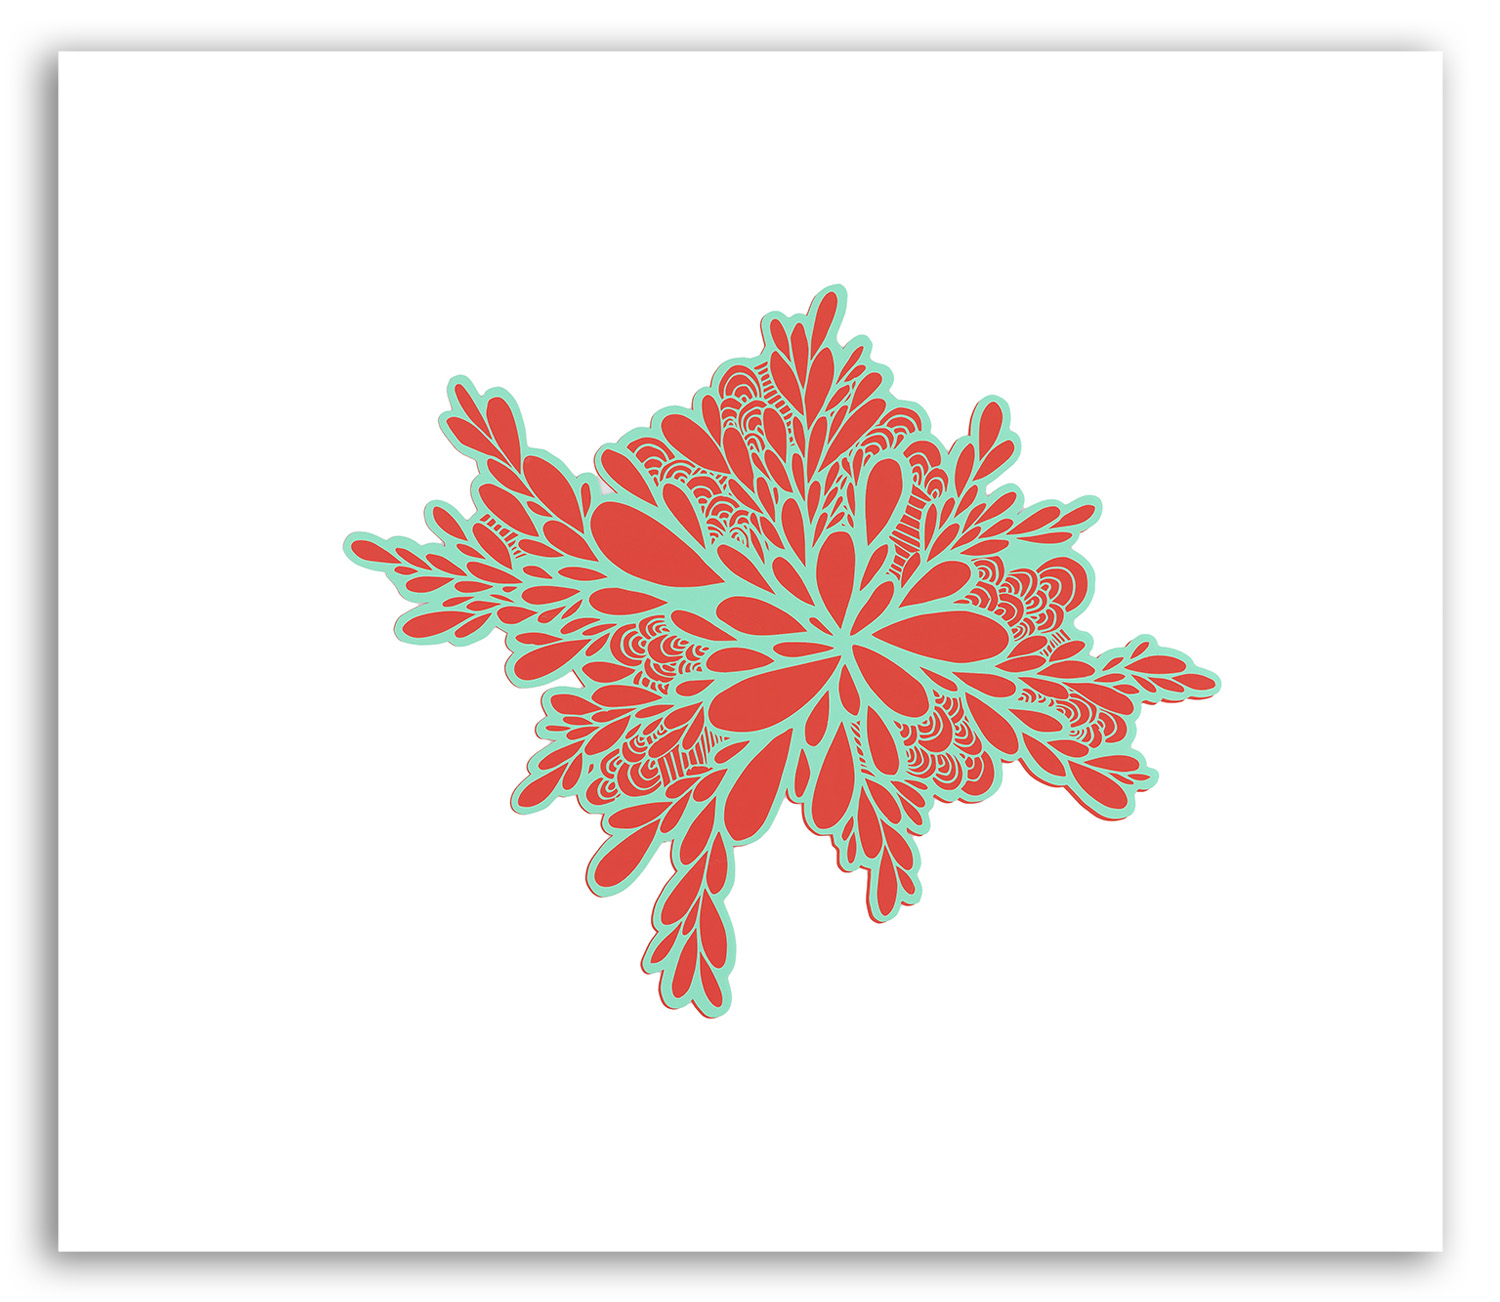 2016_02_Teal & Red_23.5x20.5 (web 1500)